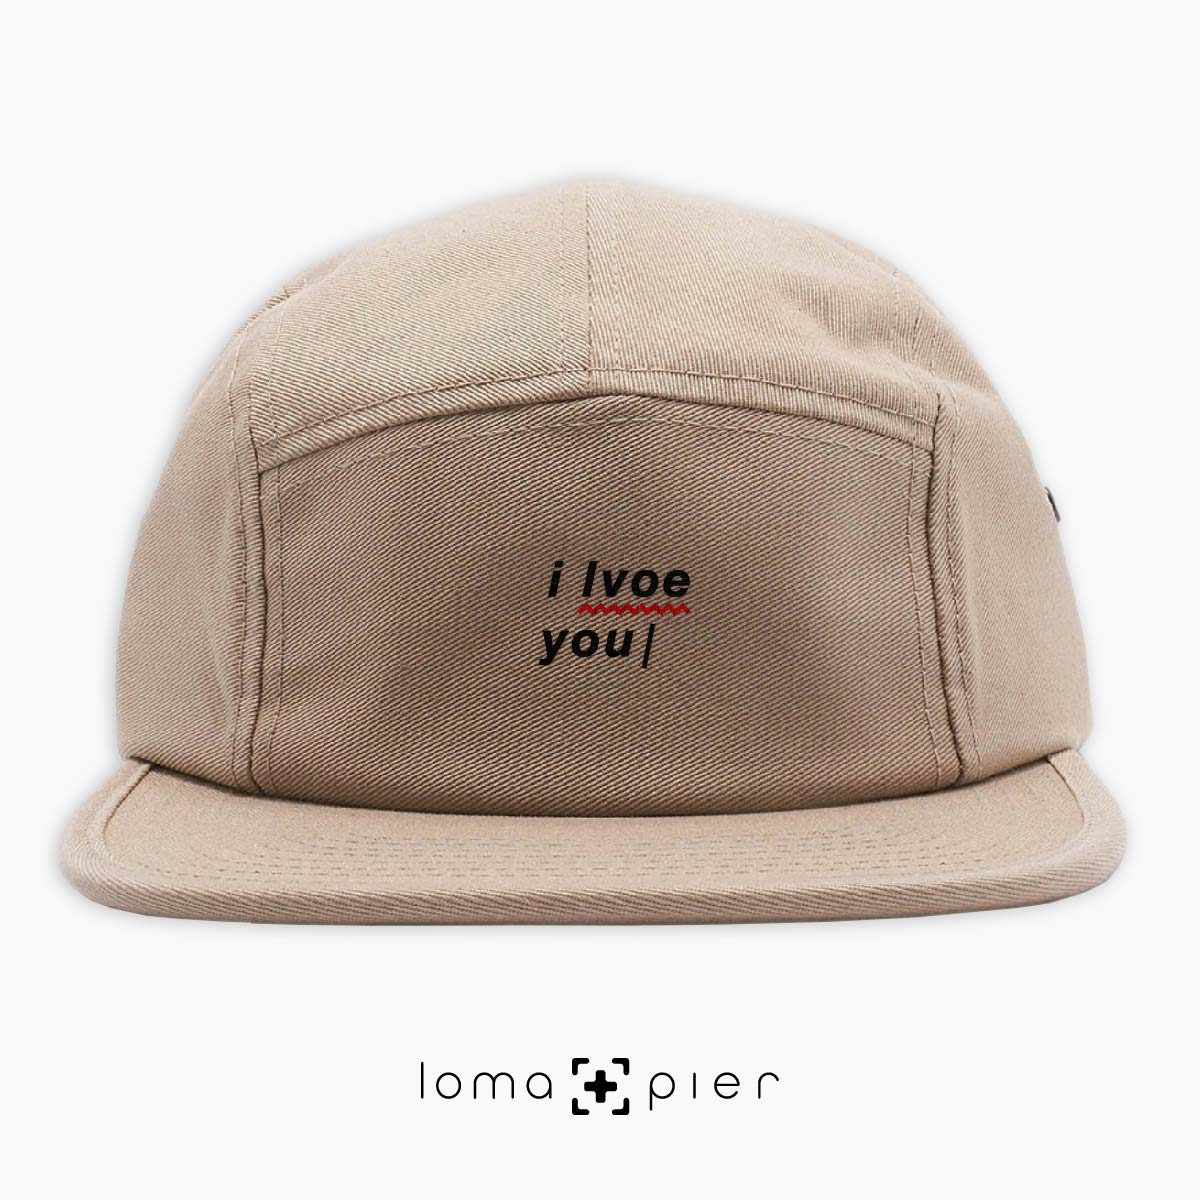 I LVOE YOU typography embroidered on a khaki cotton 5-panel hat with black thread by loma+pier hat store